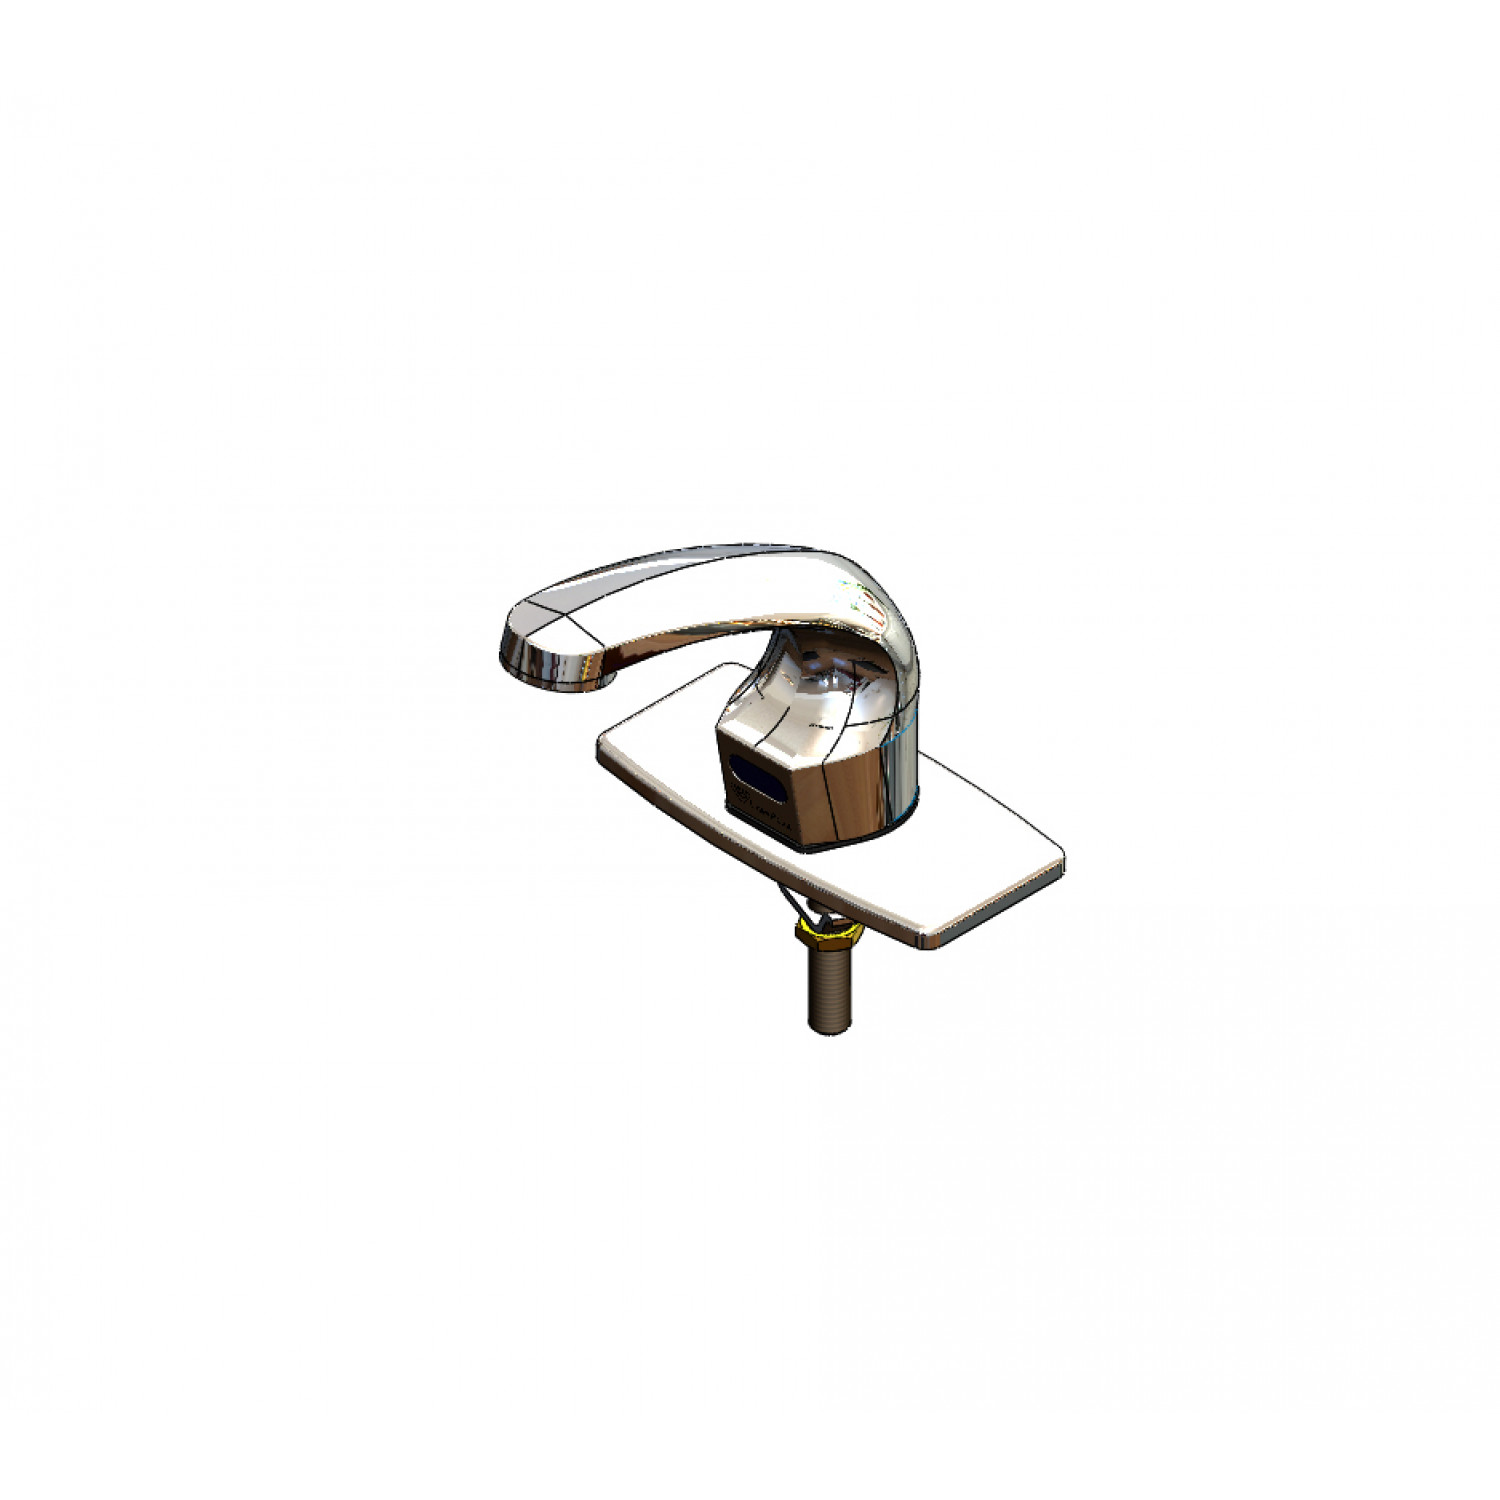 T S Ec Tmv Thermostatic Mixing Valve For Chekpoint Faucets: ChekPoint: EC-3102-TMV4V05